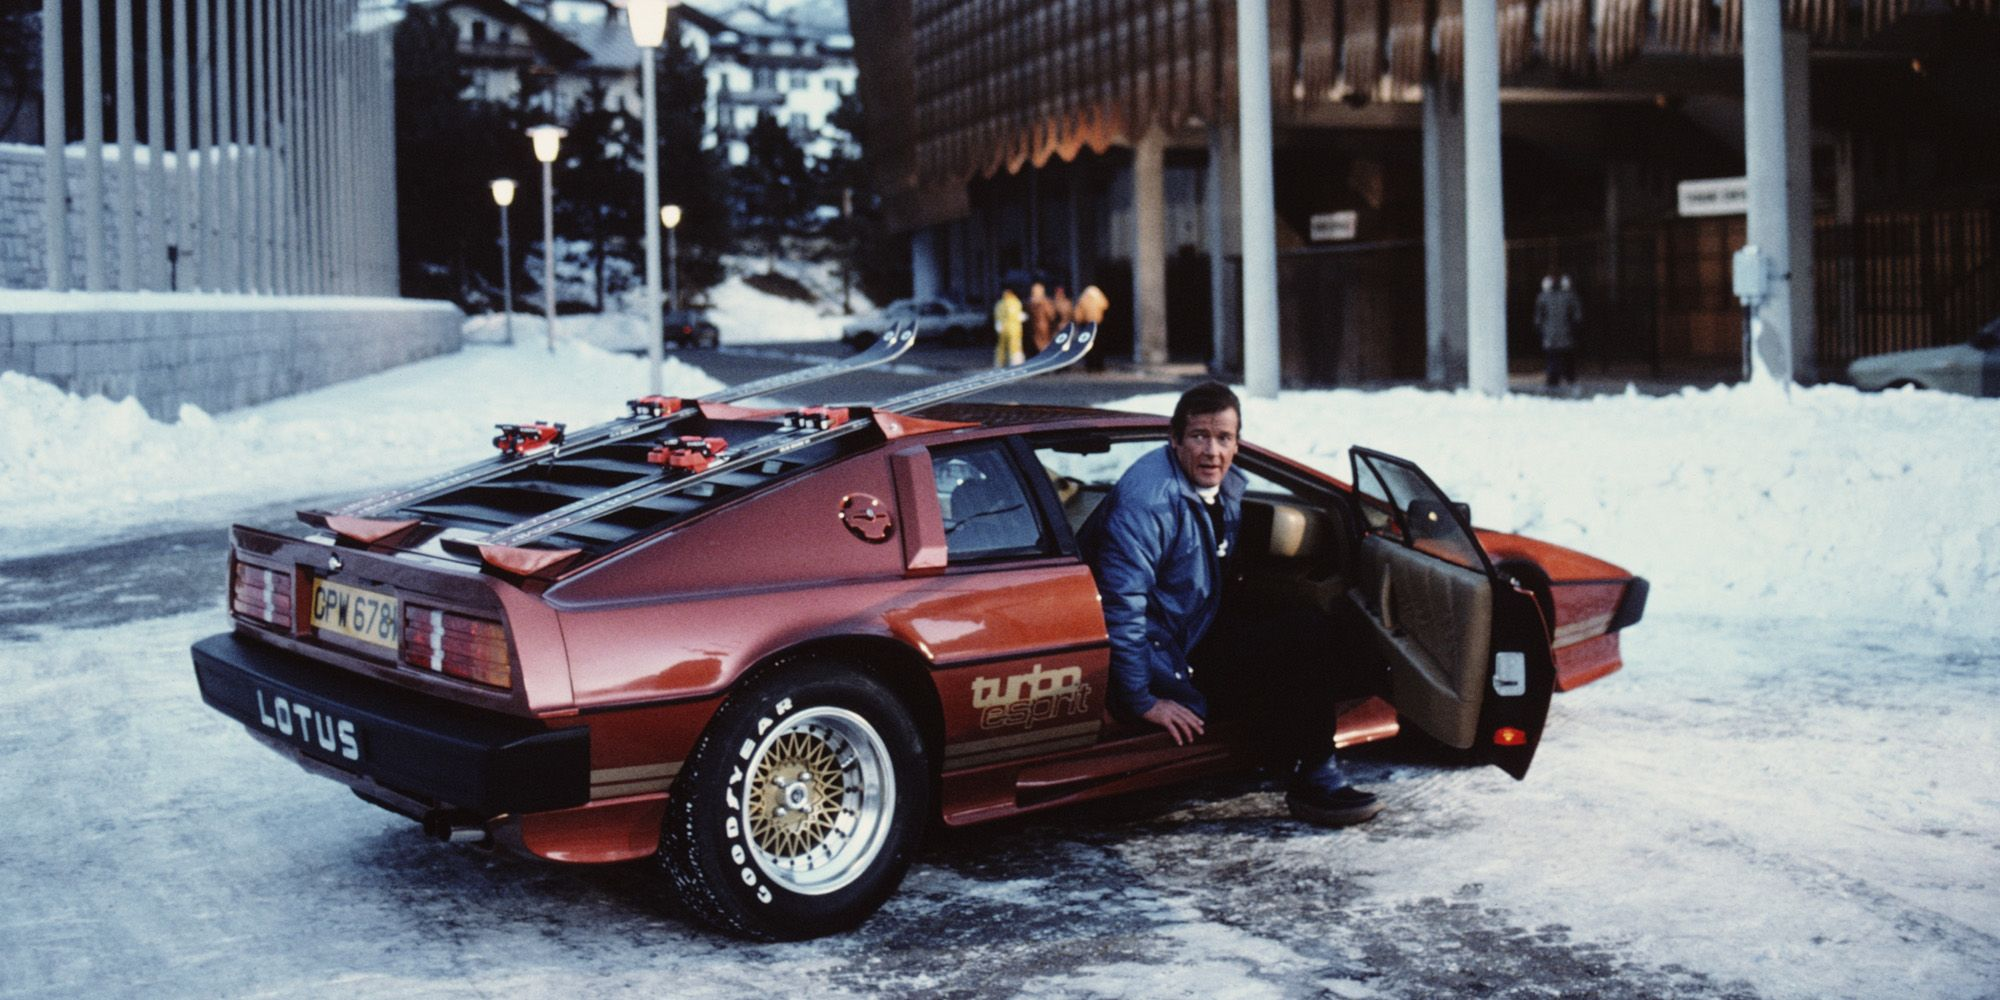 English actor Roger Moore poses as 007, with a Lotus Esprit Turbo, on the set of the James Bond film 'For Your Eyes Only' in Cortina d'Ampezzo, Italy, March 1981. (Photo by Keith Hamshere/Getty Images)